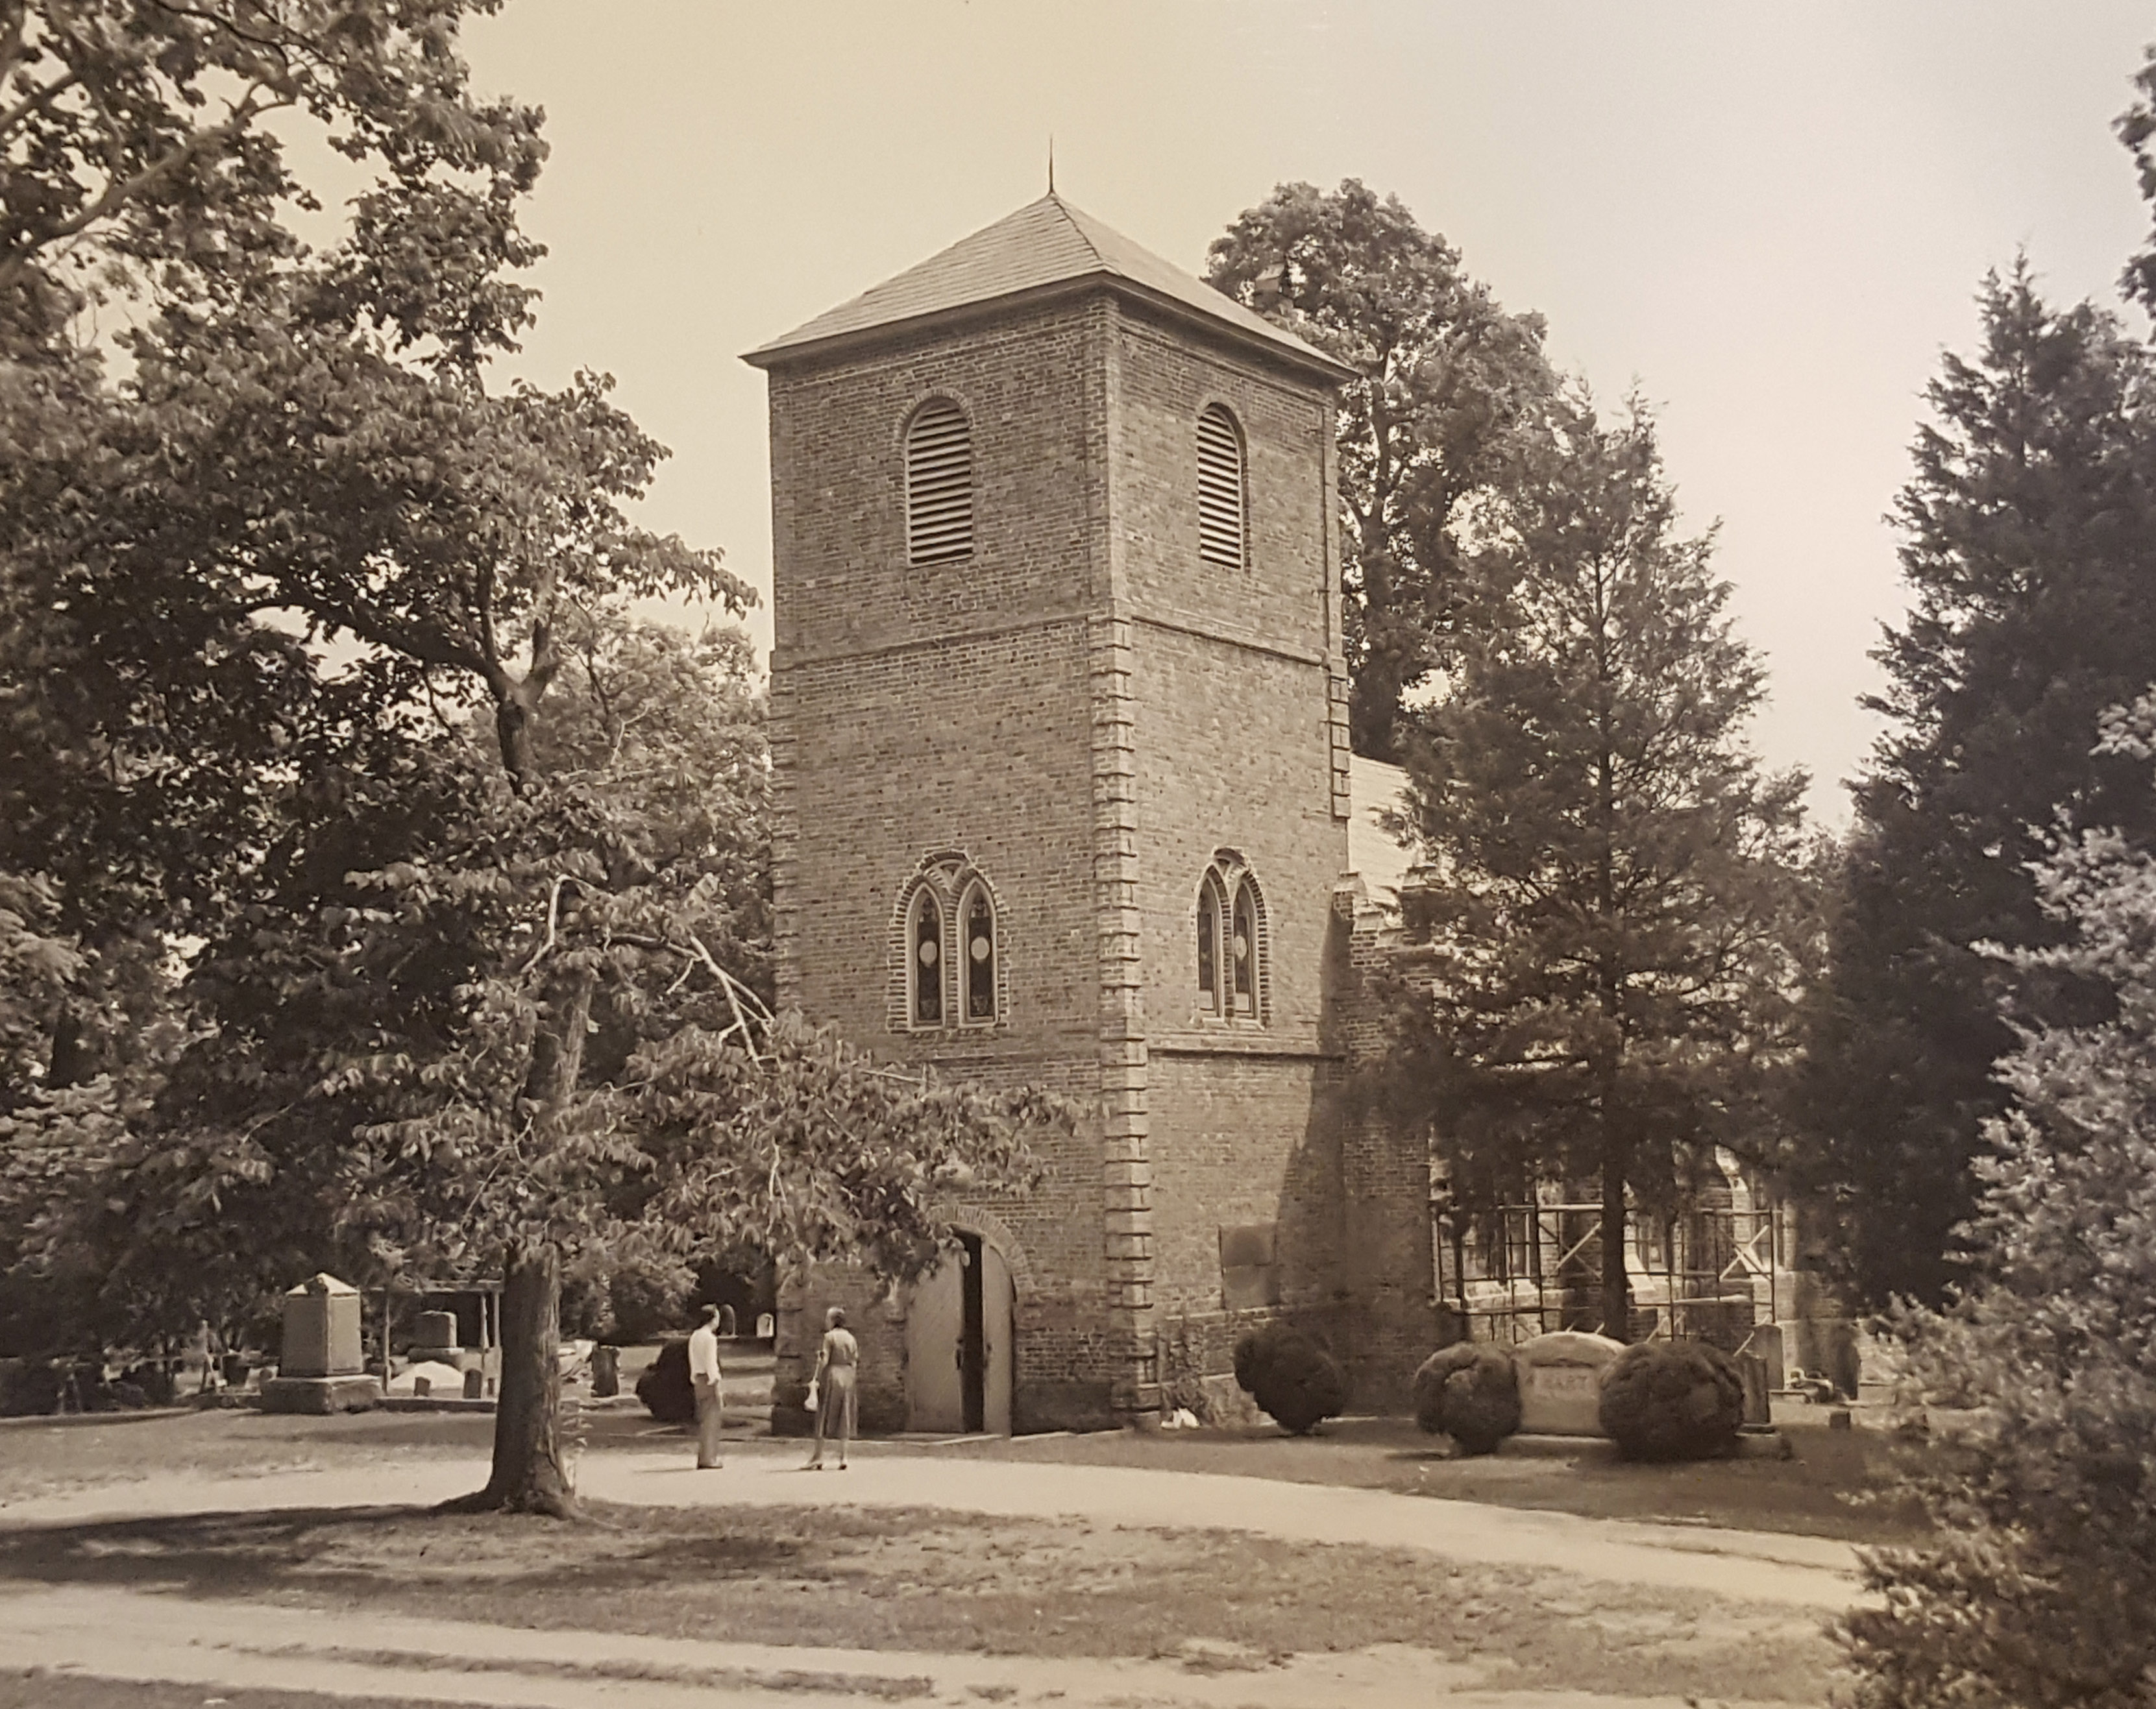 During 1950s Restoration of the Church Building.